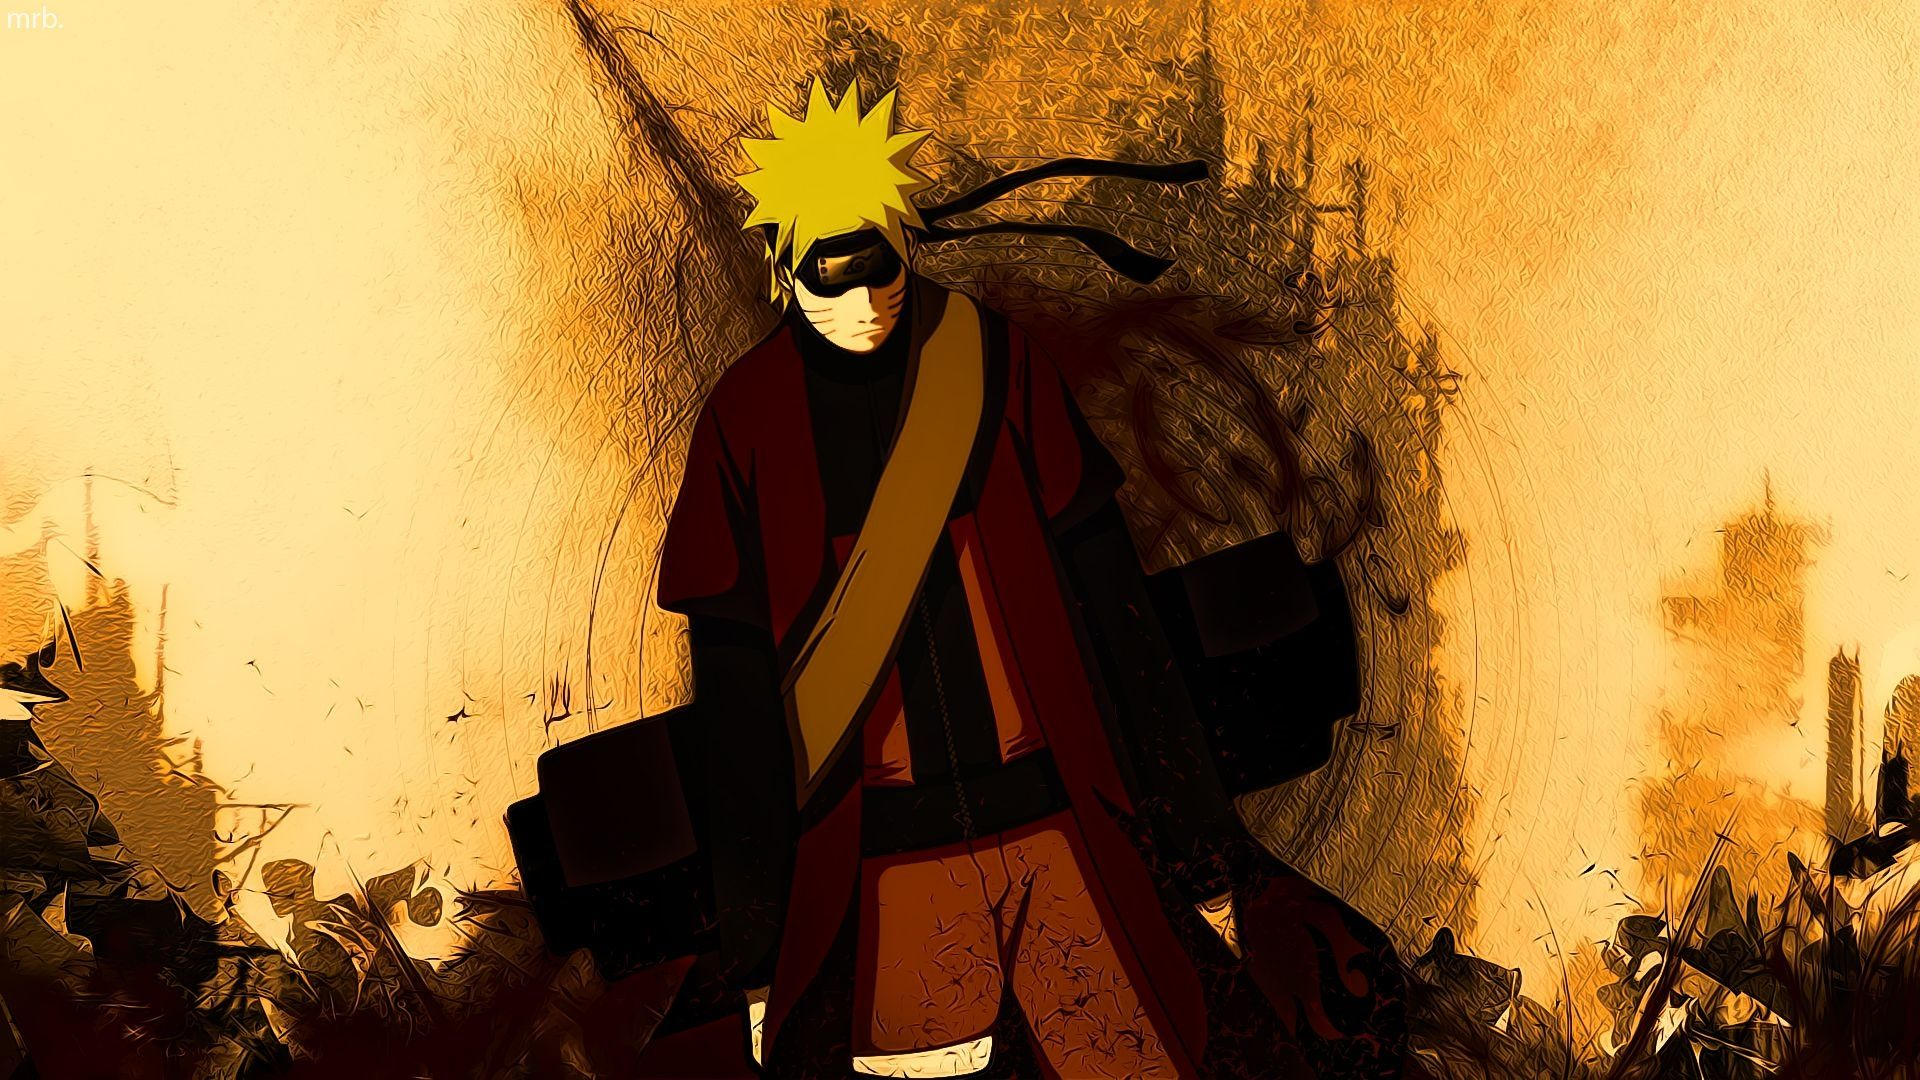 Naruto Desktop, Free Wallpaper